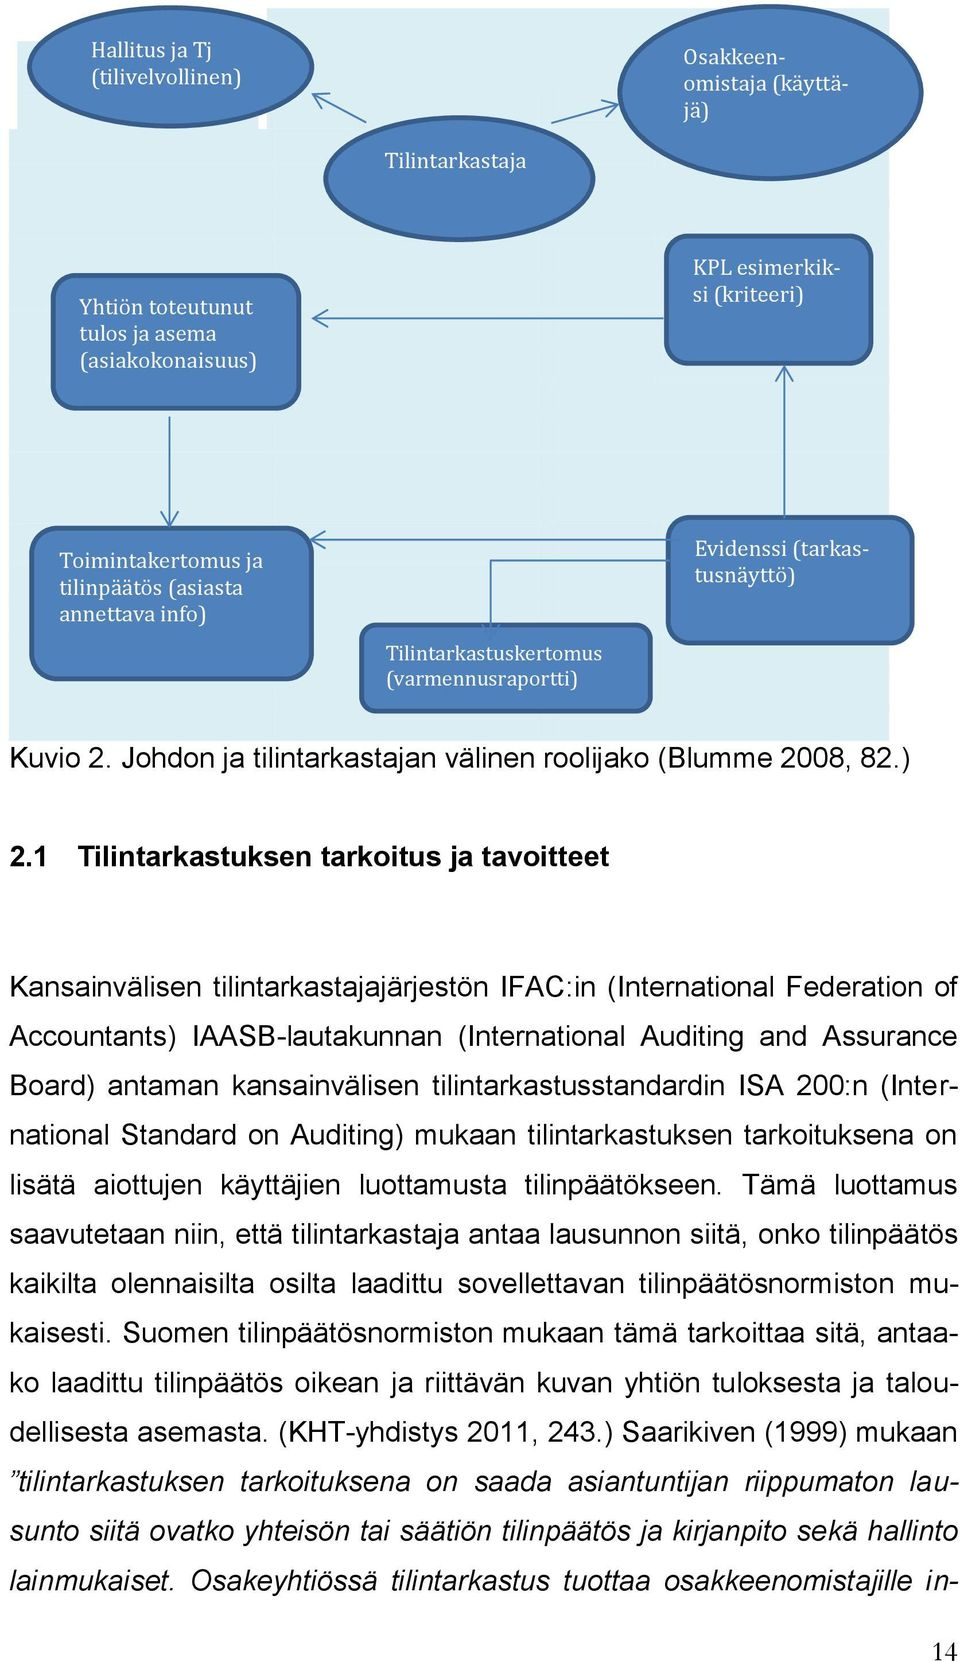 1 Tilintarkastuksen tarkoitus ja tavoitteet Kansainvälisen tilintarkastajajärjestön IFAC:in (International Federation of Accountants) IAASB-lautakunnan (International Auditing and Assurance Board)